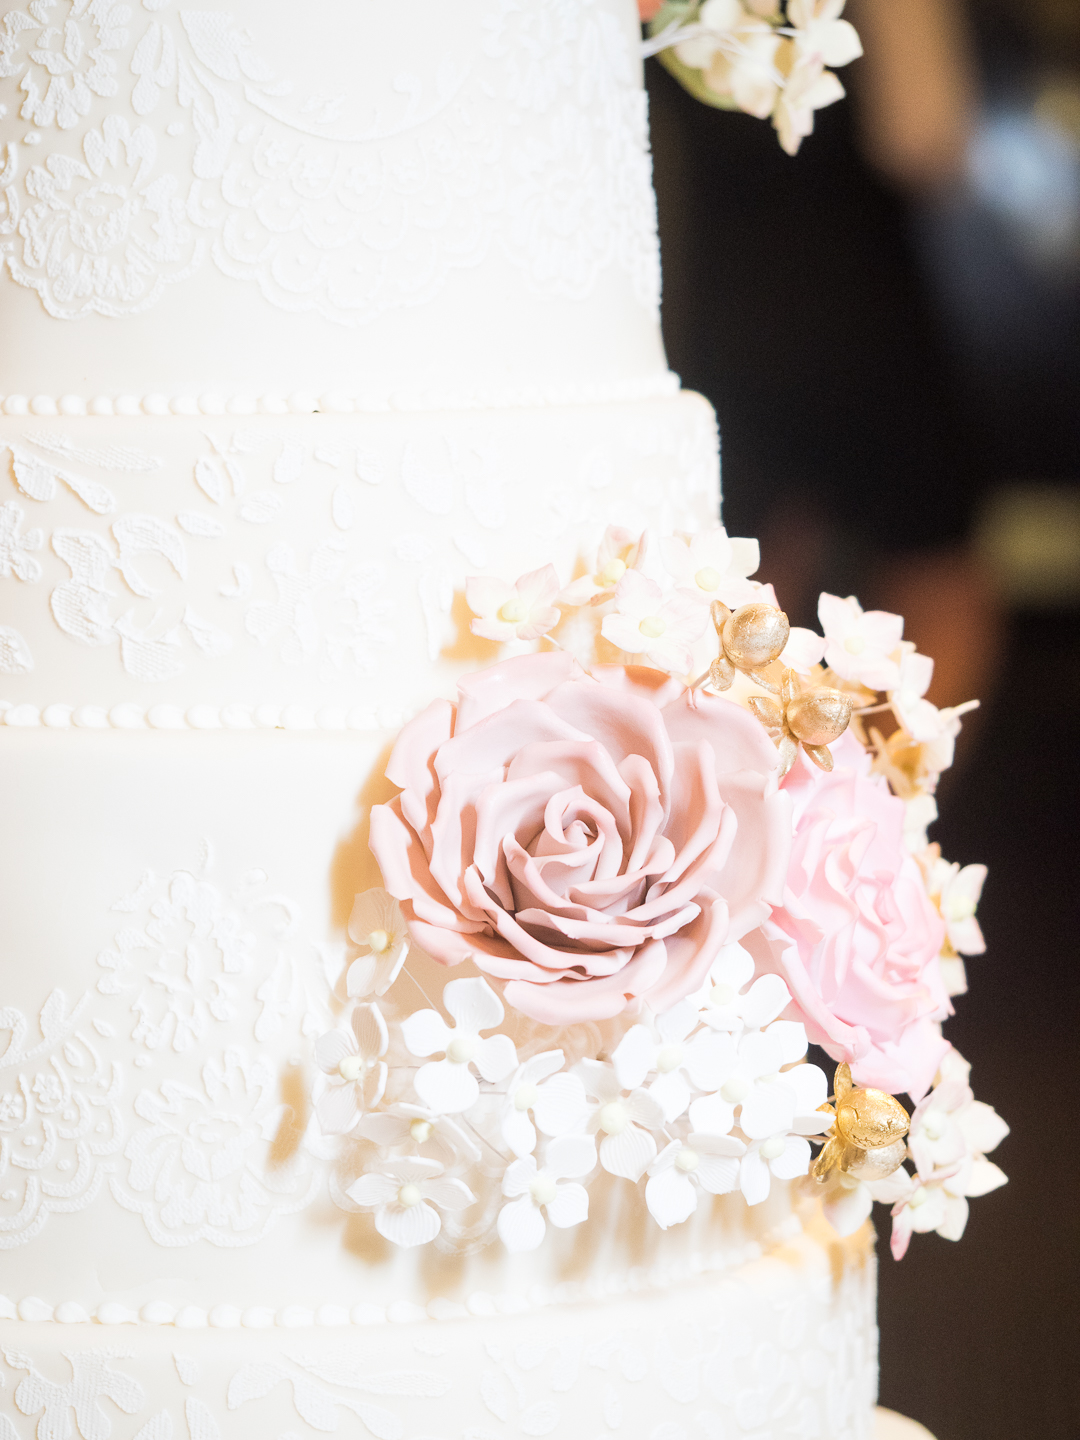 Sugar Flowers and Lace Wedding Cake Close Up.jpg